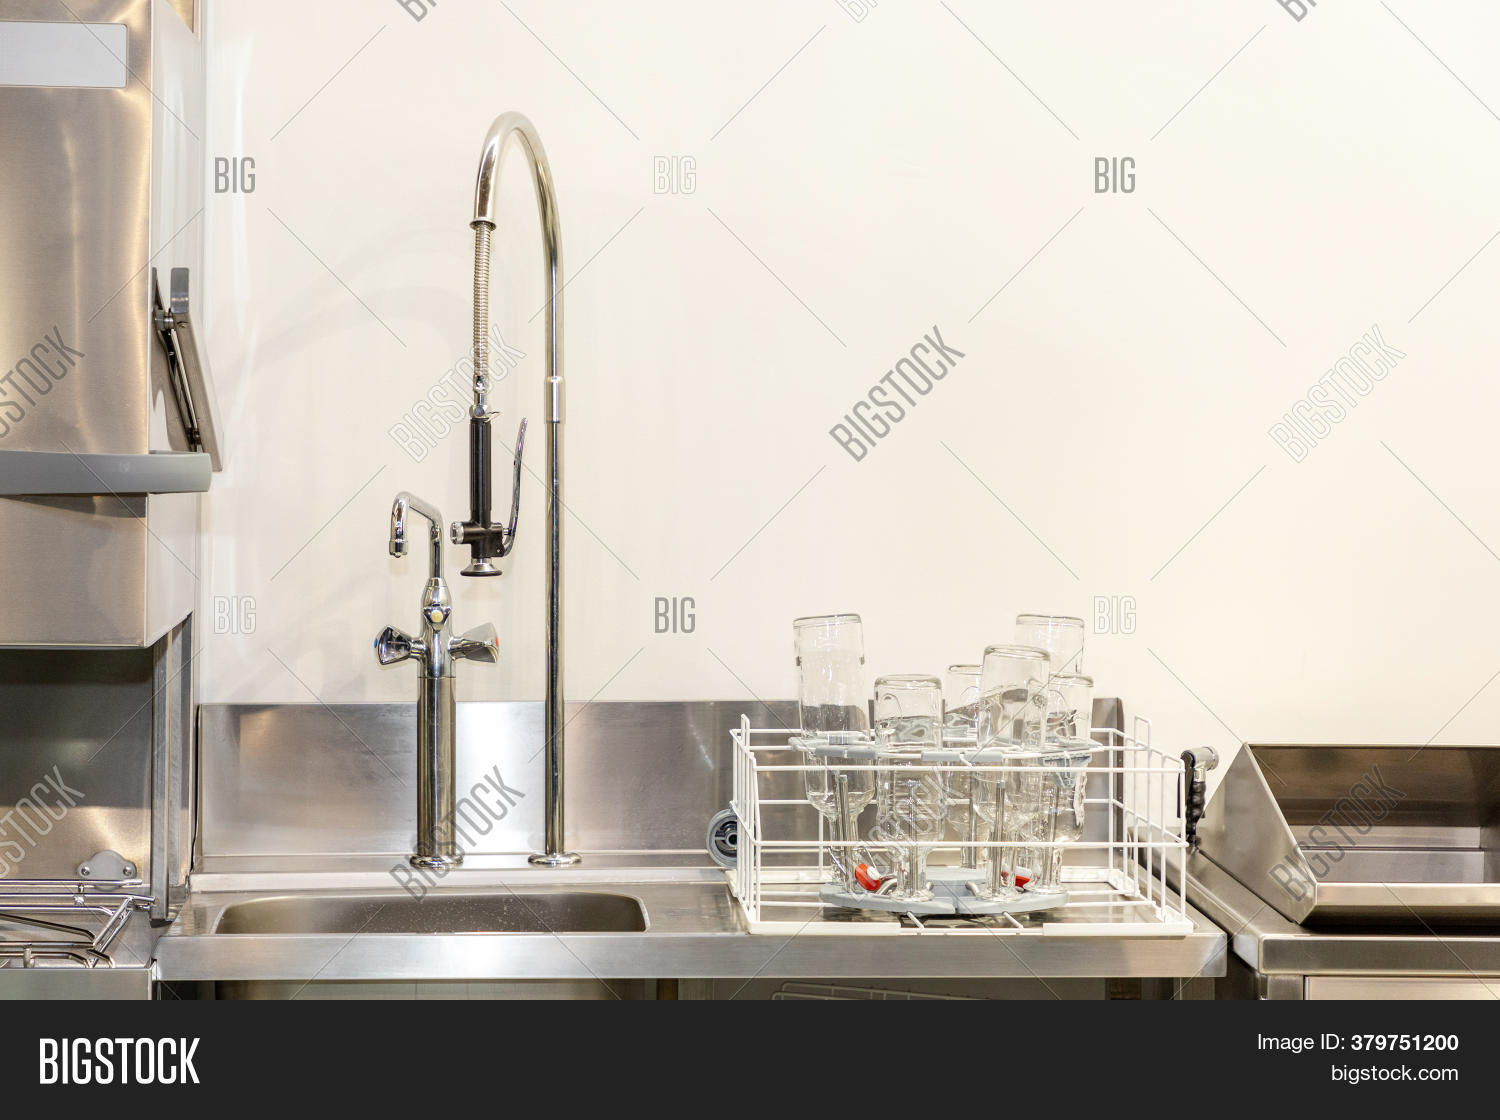 Commercial Kitchen Image Photo Free Trial Bigstock